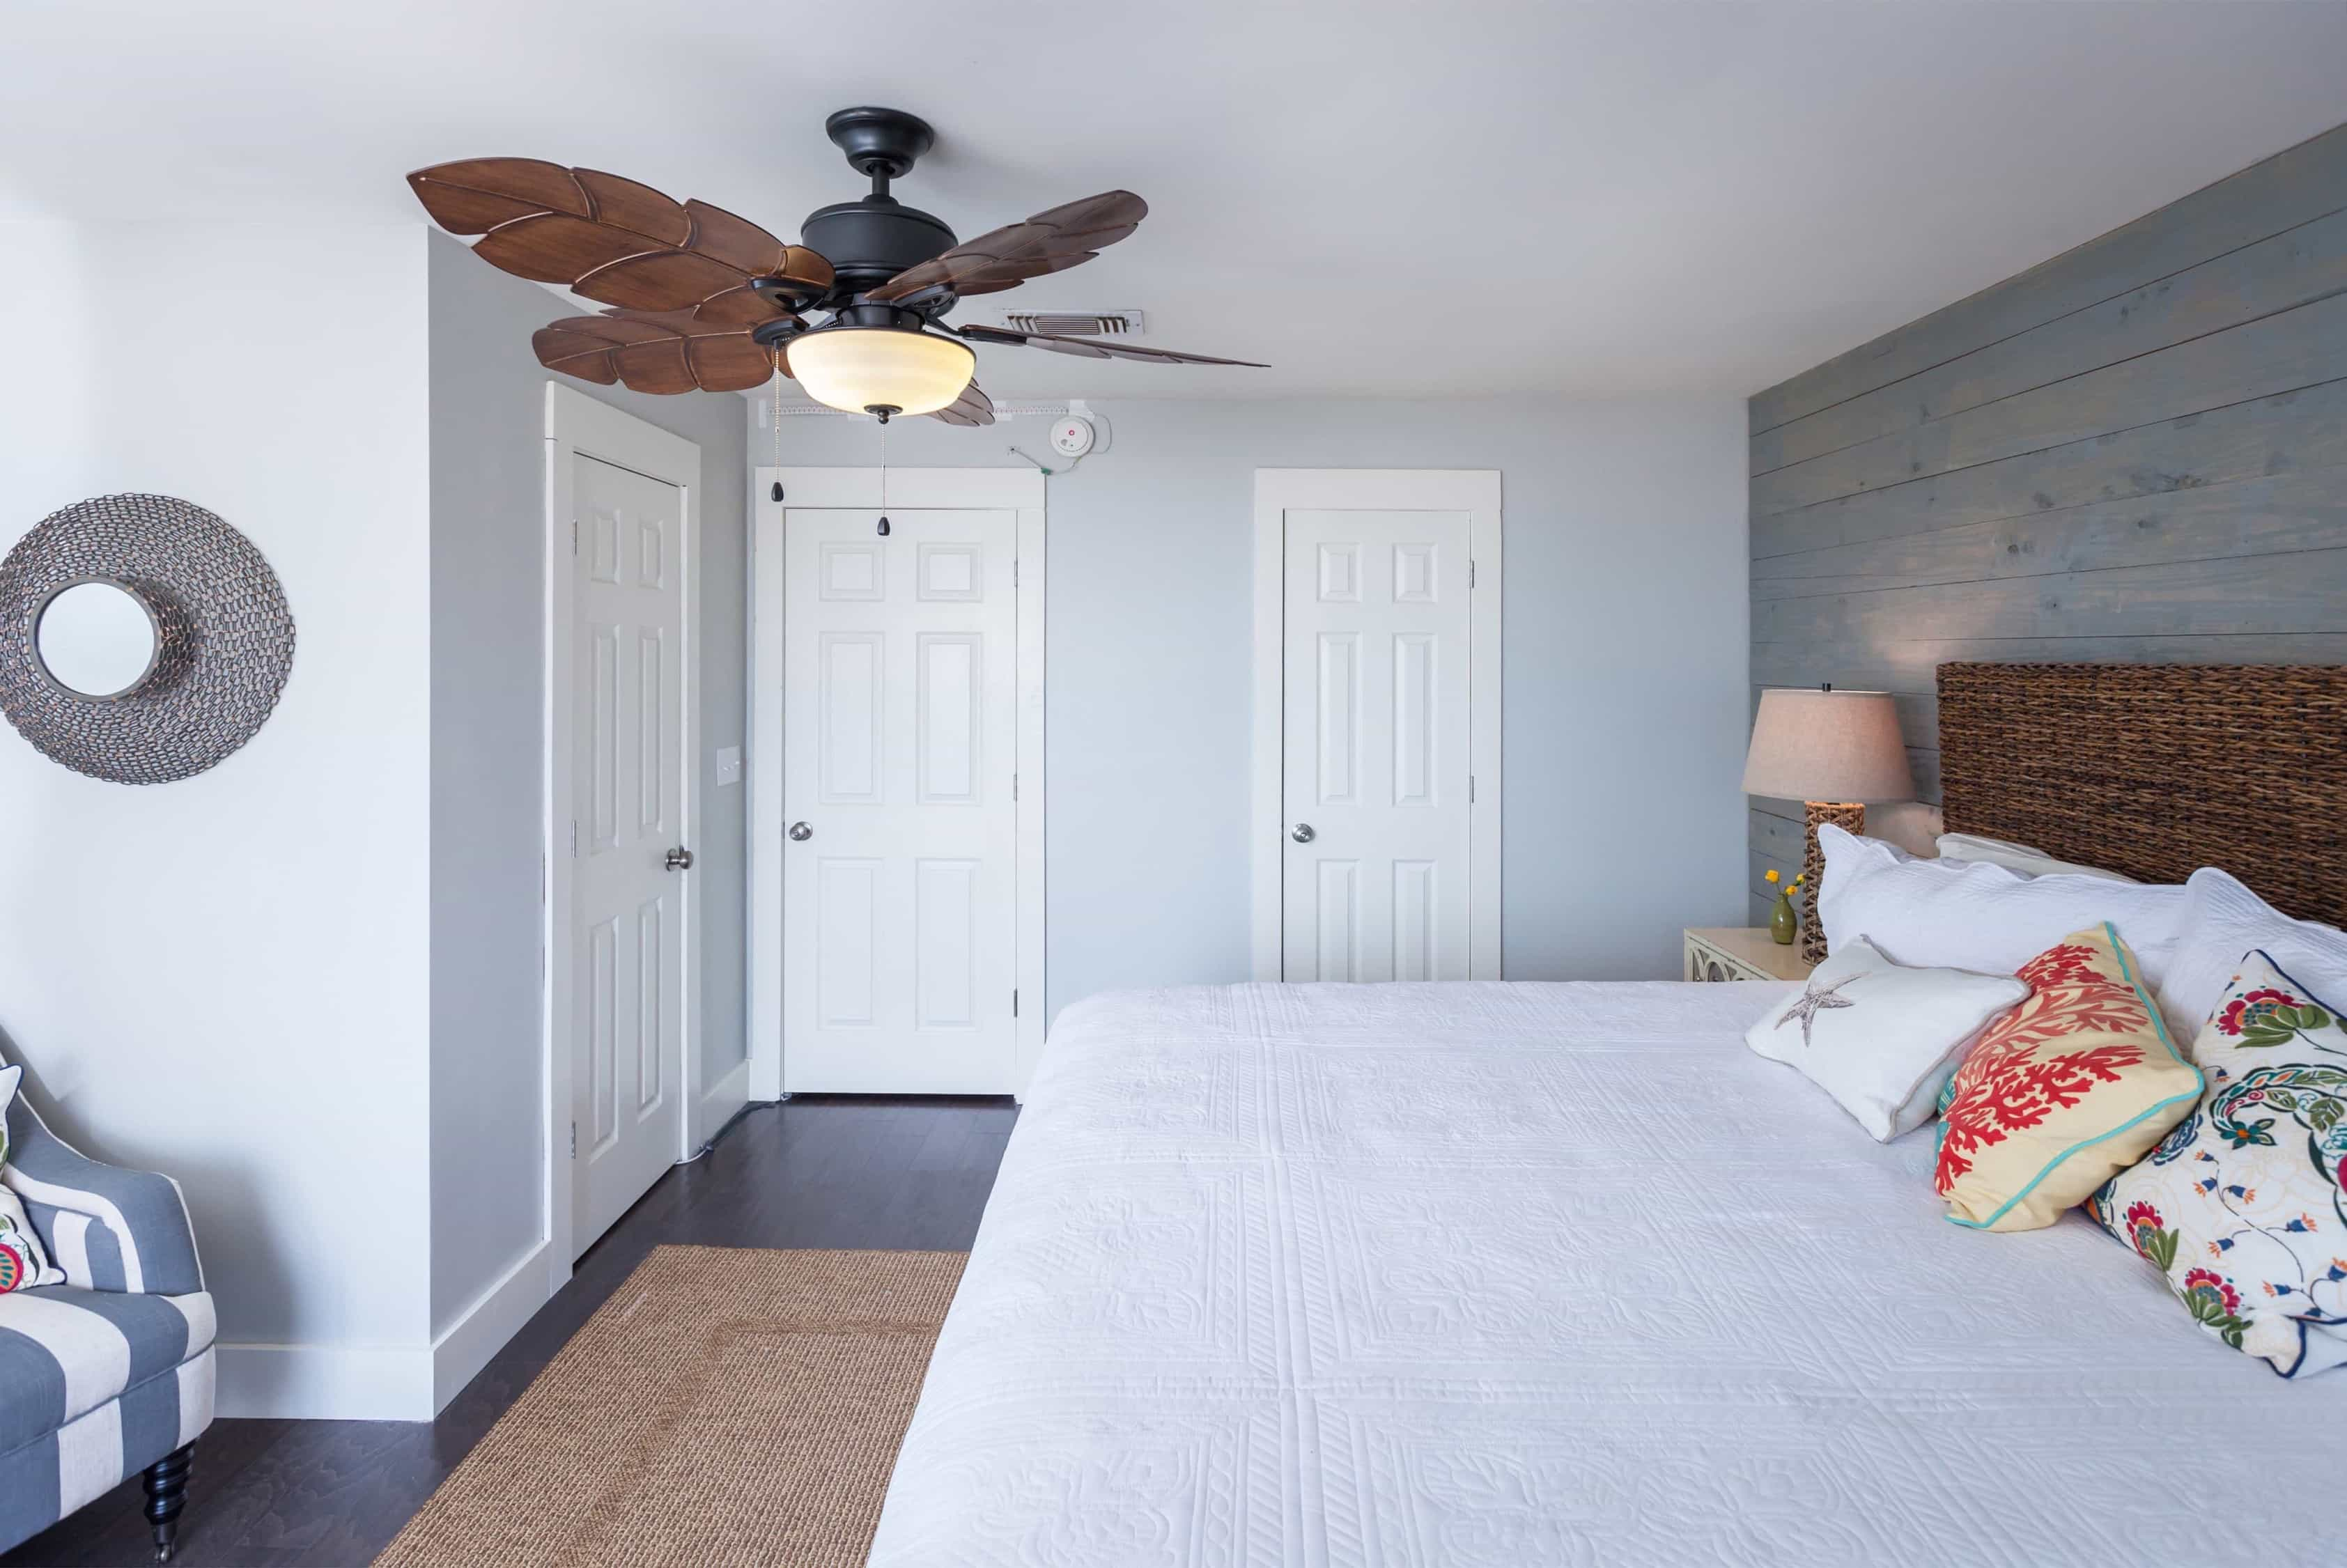 Featured Image of Rustic Bedroom With Walk In Closet Storage